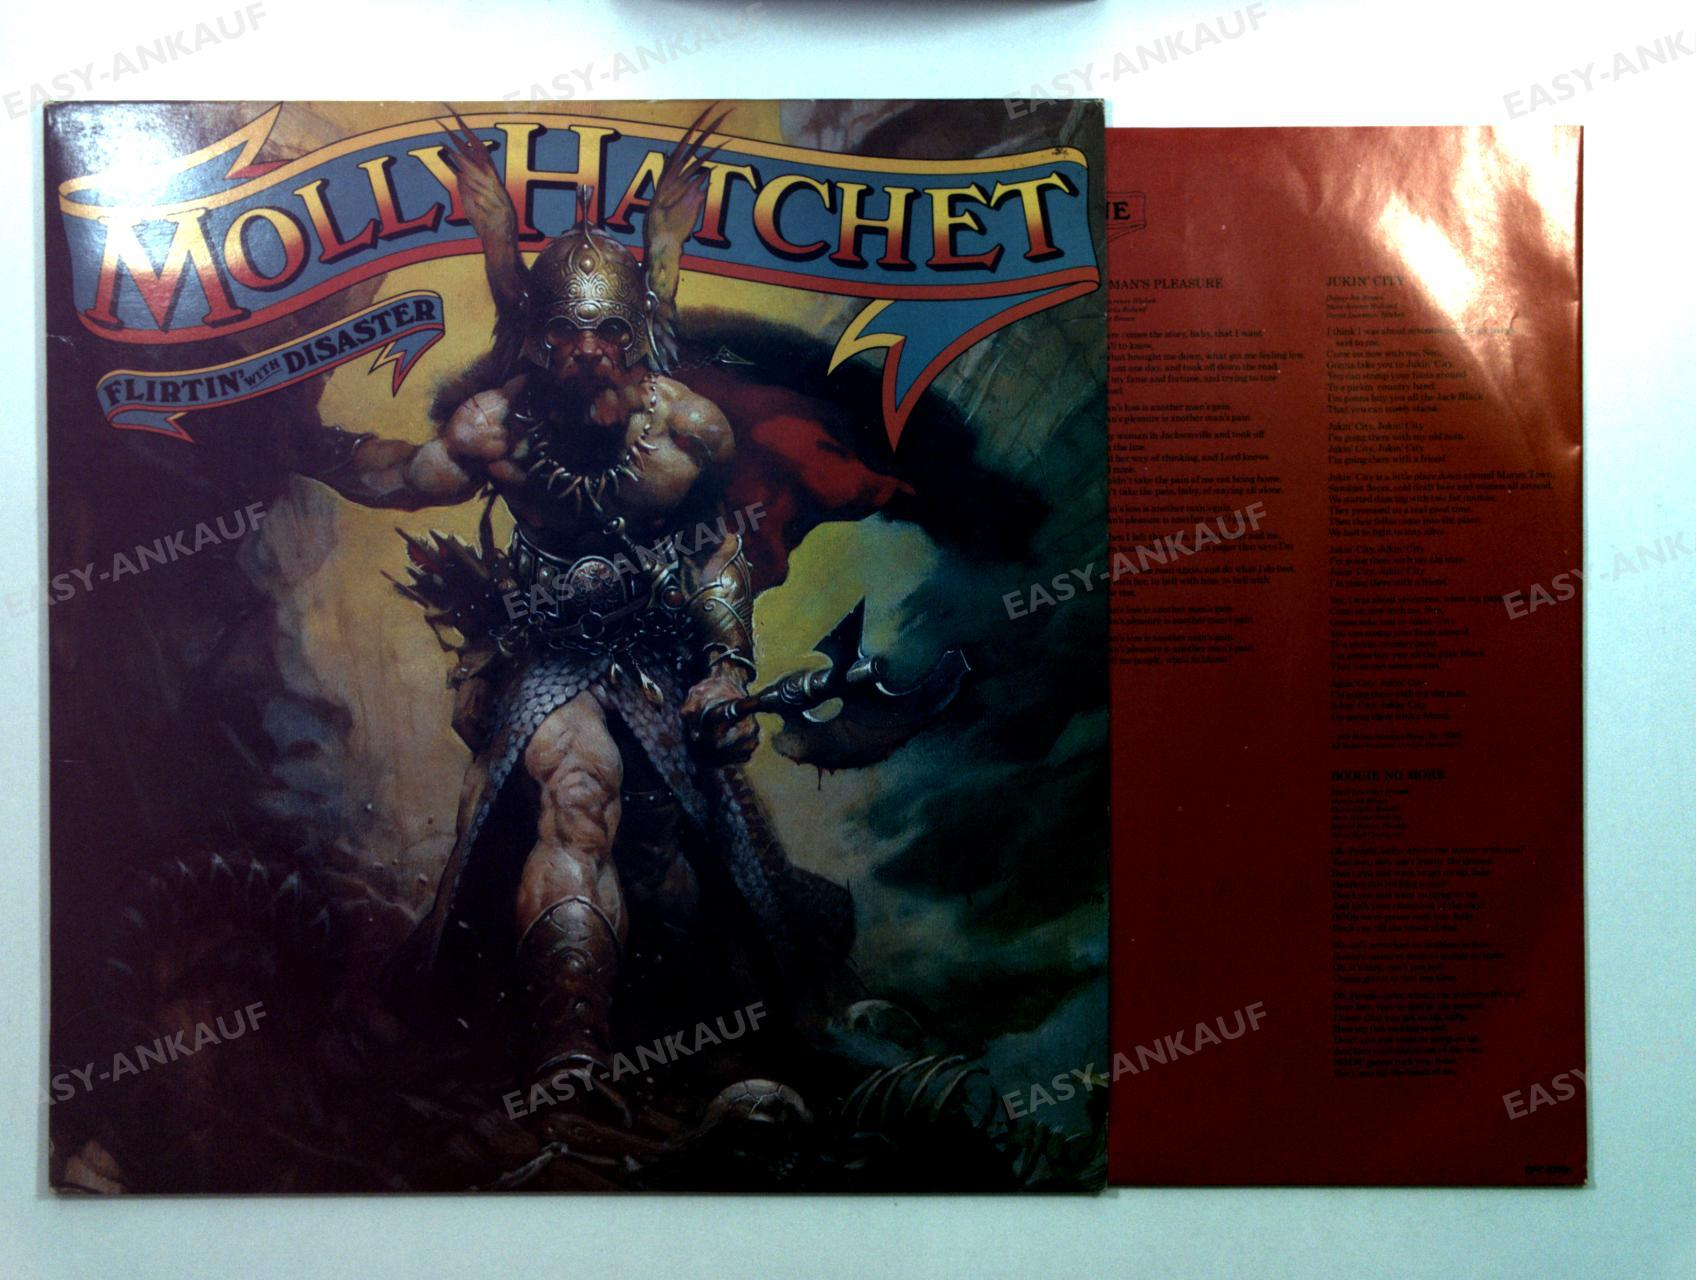 Molly-Hatchet-Flirtin-039-With-Disaster-NL-LP-1979-Innerbag-3